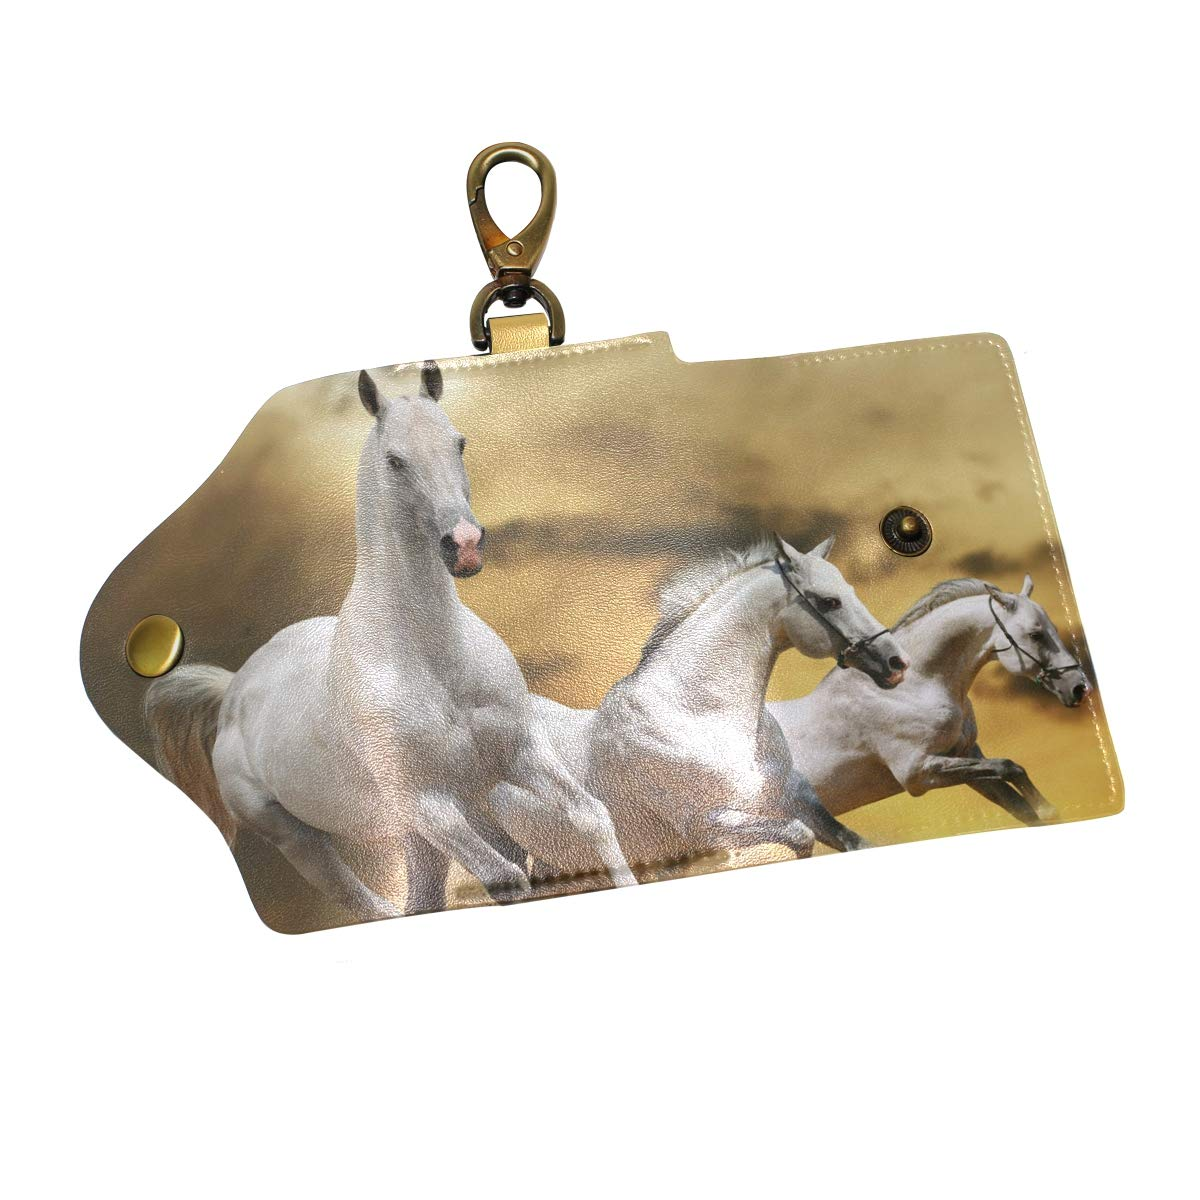 KEAKIA Horse Running Grass Leather Key Case Wallets Tri-fold Key Holder Keychains with 6 Hooks 2 Slot Snap Closure for Men Women